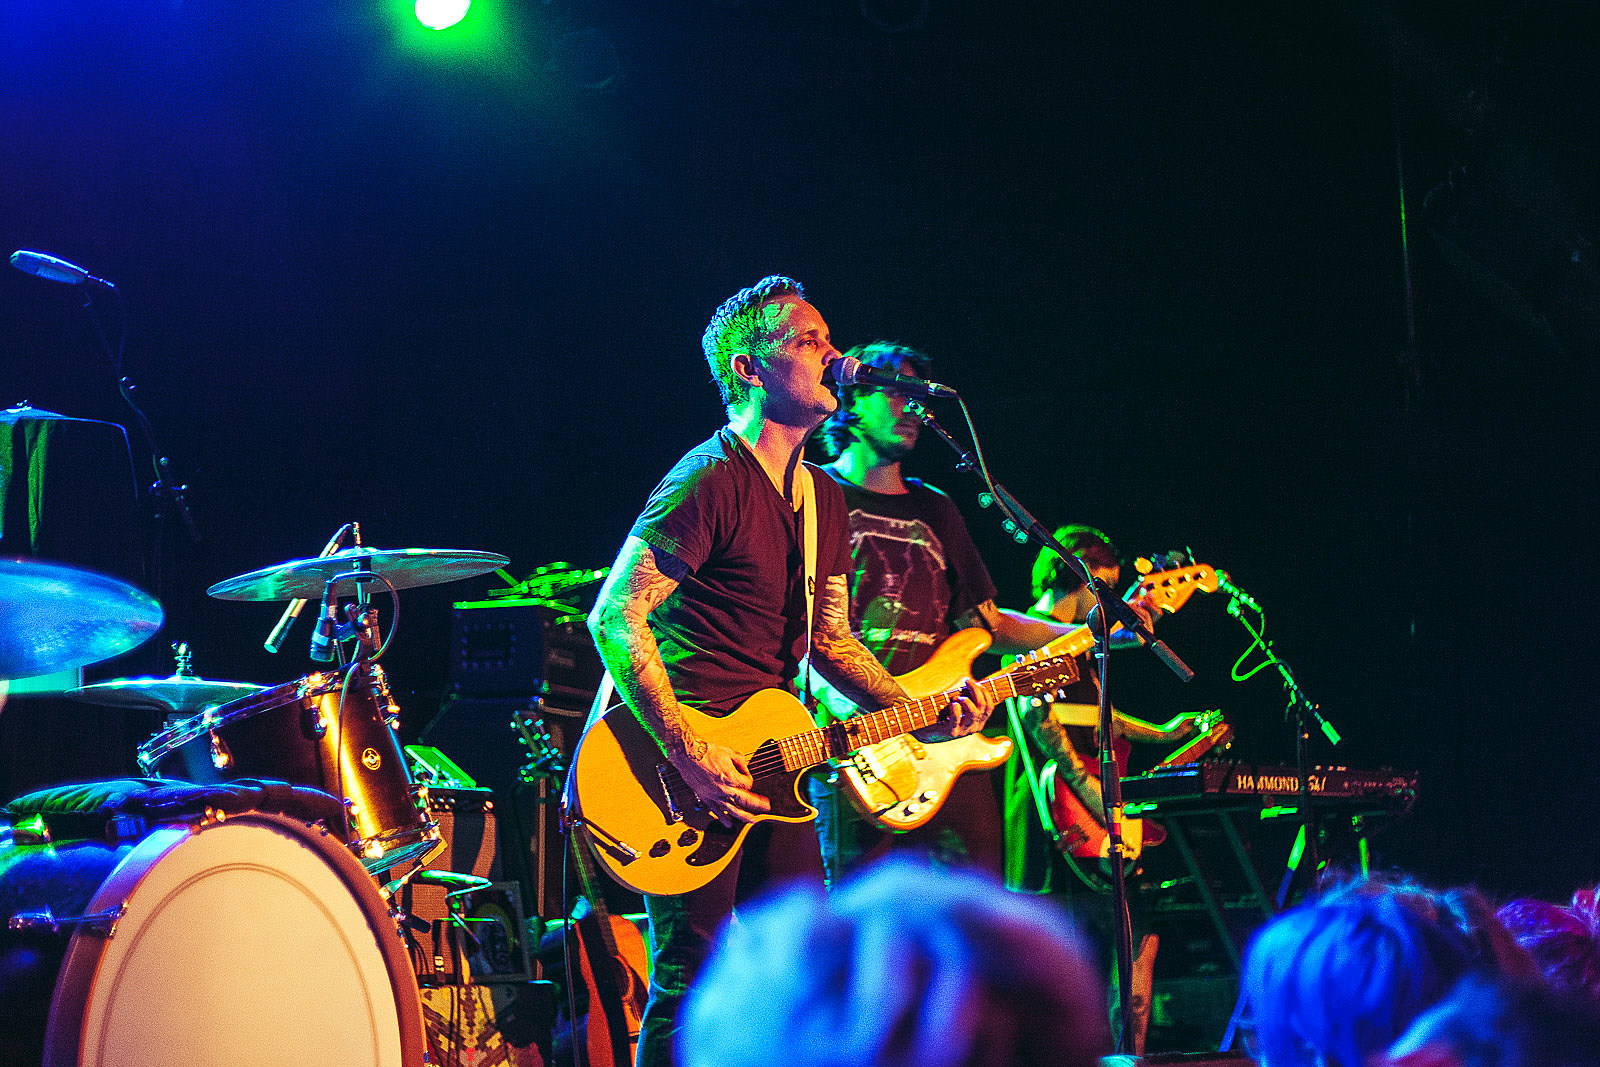 Dave Hause at Music Hall of Williamsburg